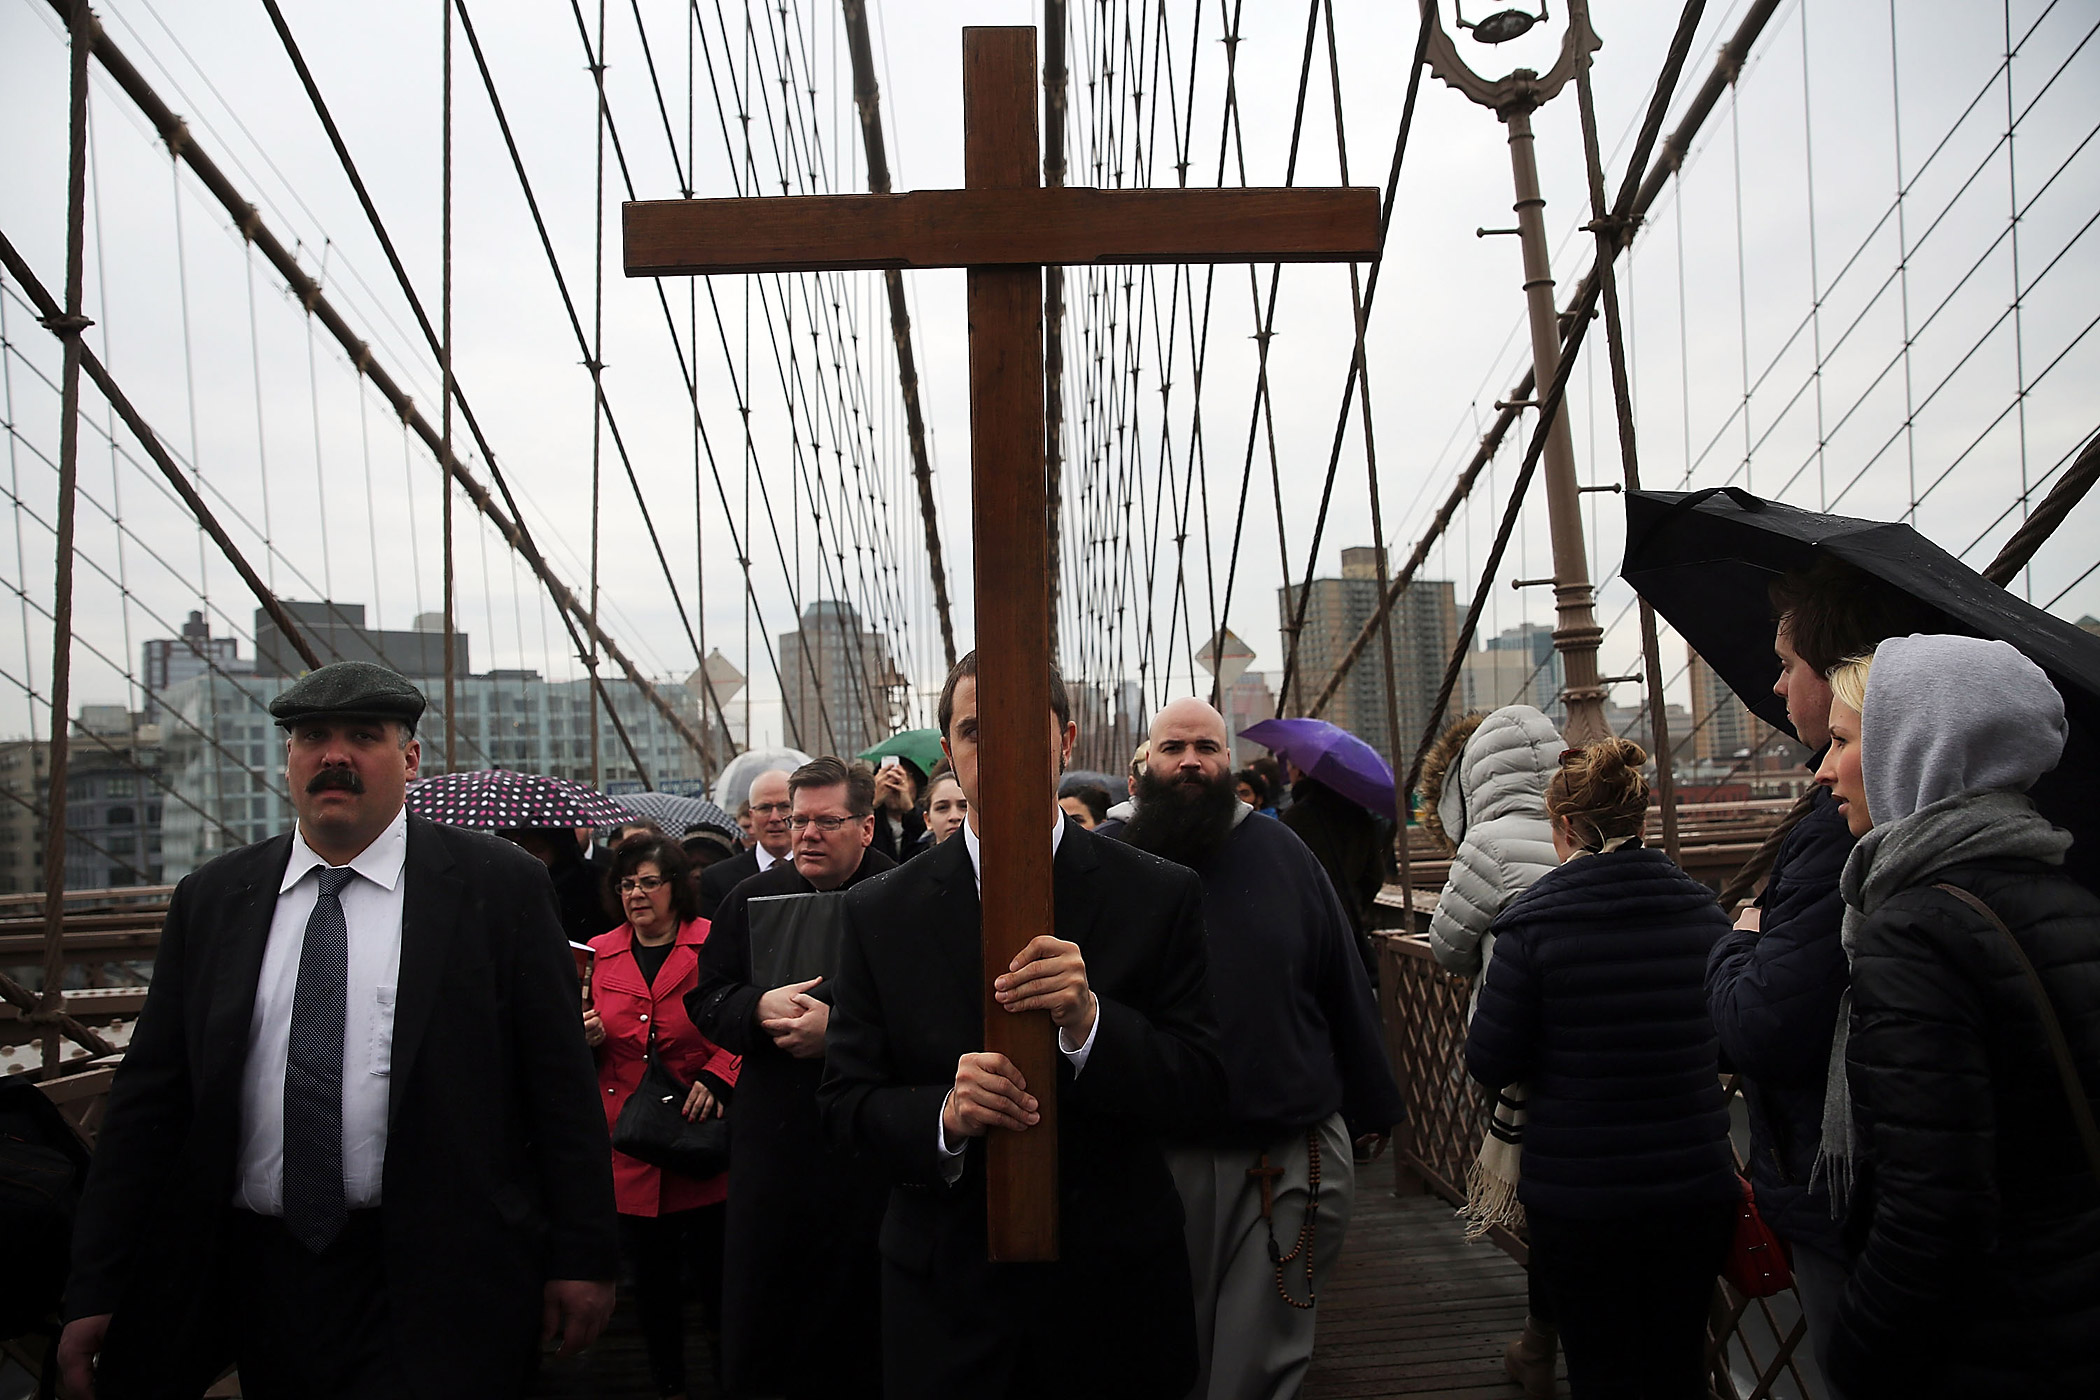 Members of the Archdiocese of New York and the Diocese of Brooklyn lead the Way of the Cross procession over the Brooklyn Bridge on April 3, 2015 in New York City.